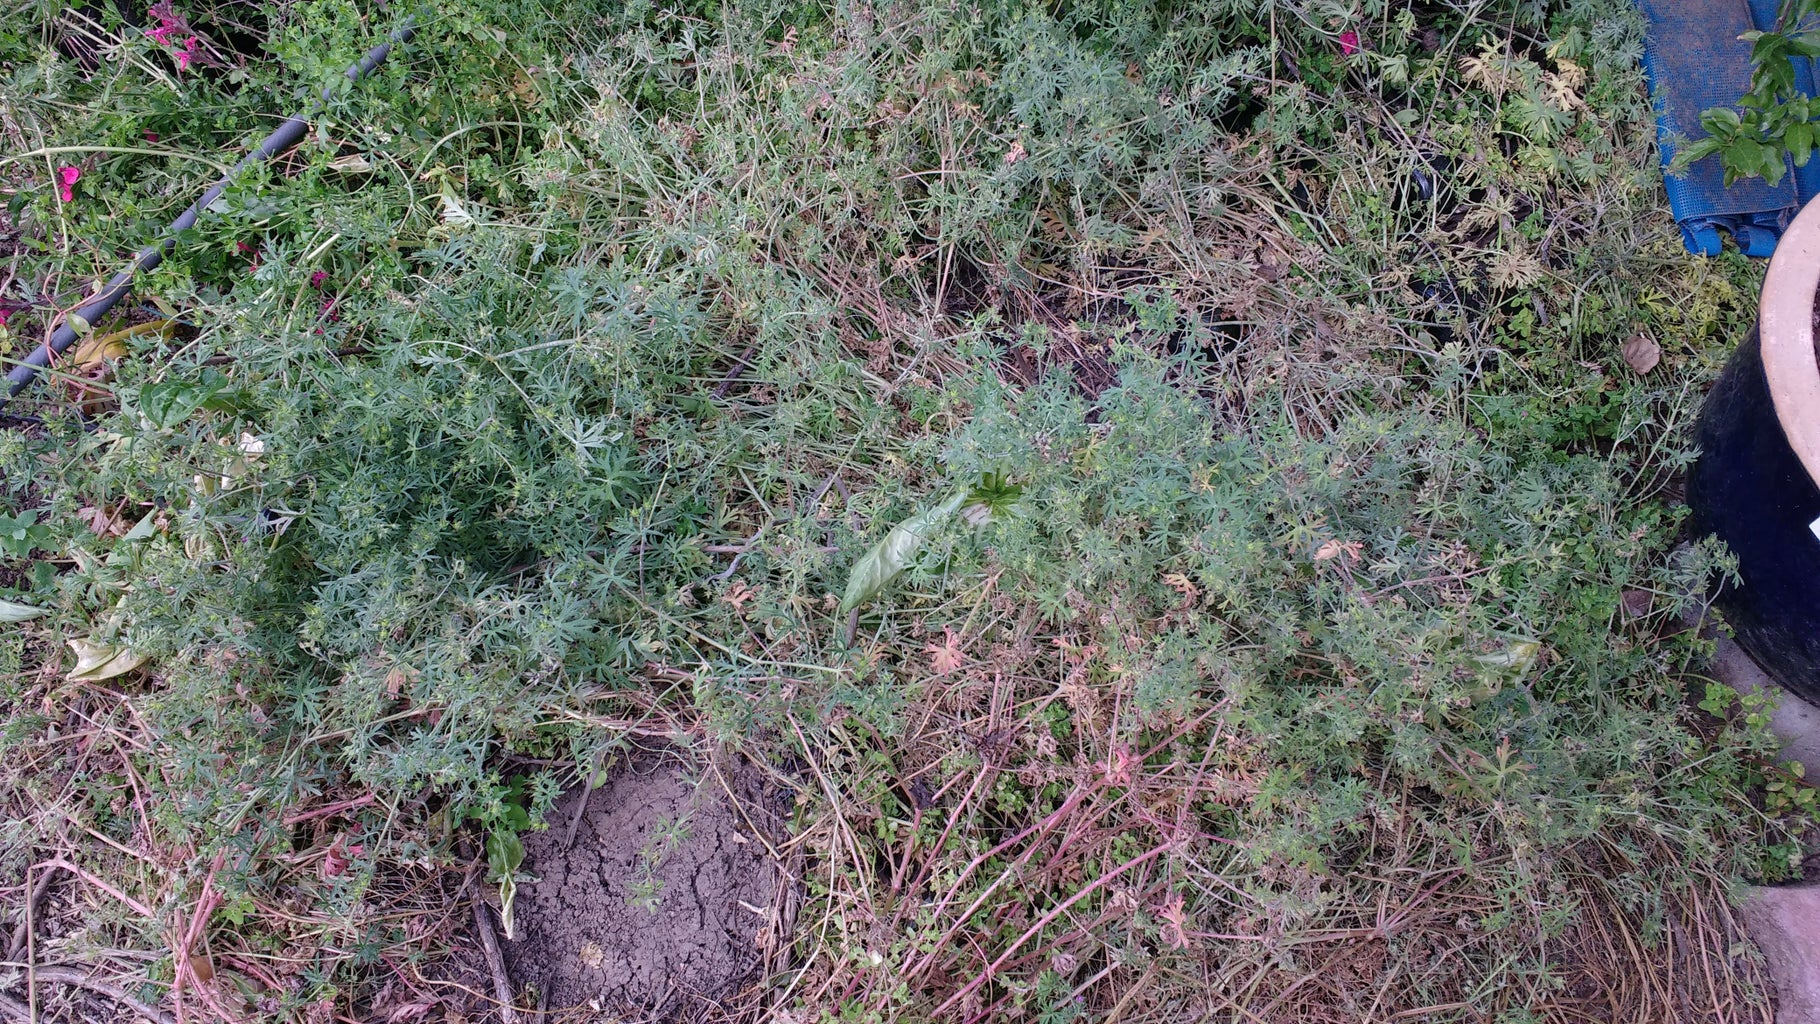 So Why Compost Weeds?